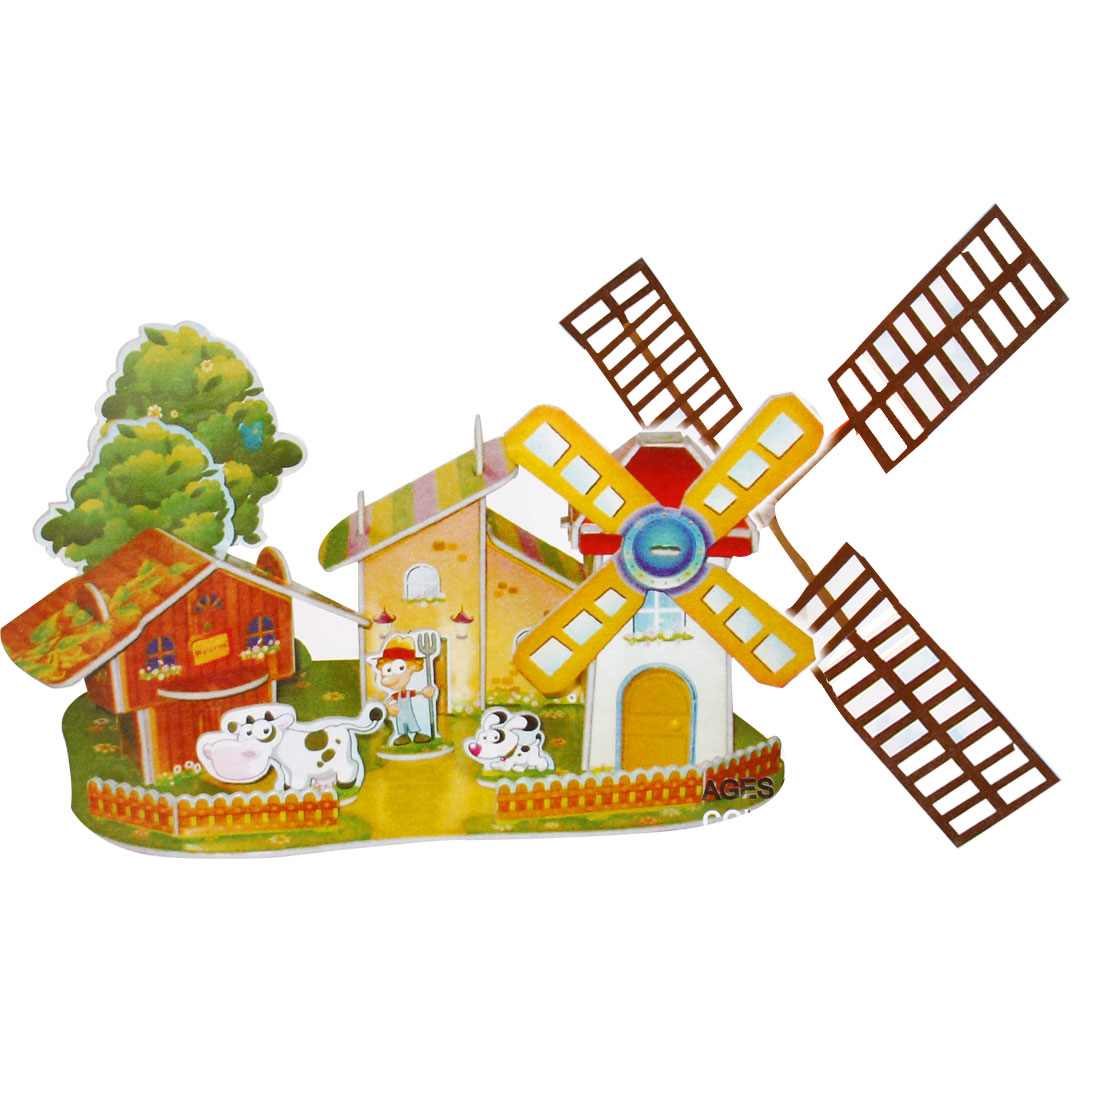 4 Sheets Happy Windmill Farm 3D Jigsaw Puzzles Toys for Kids